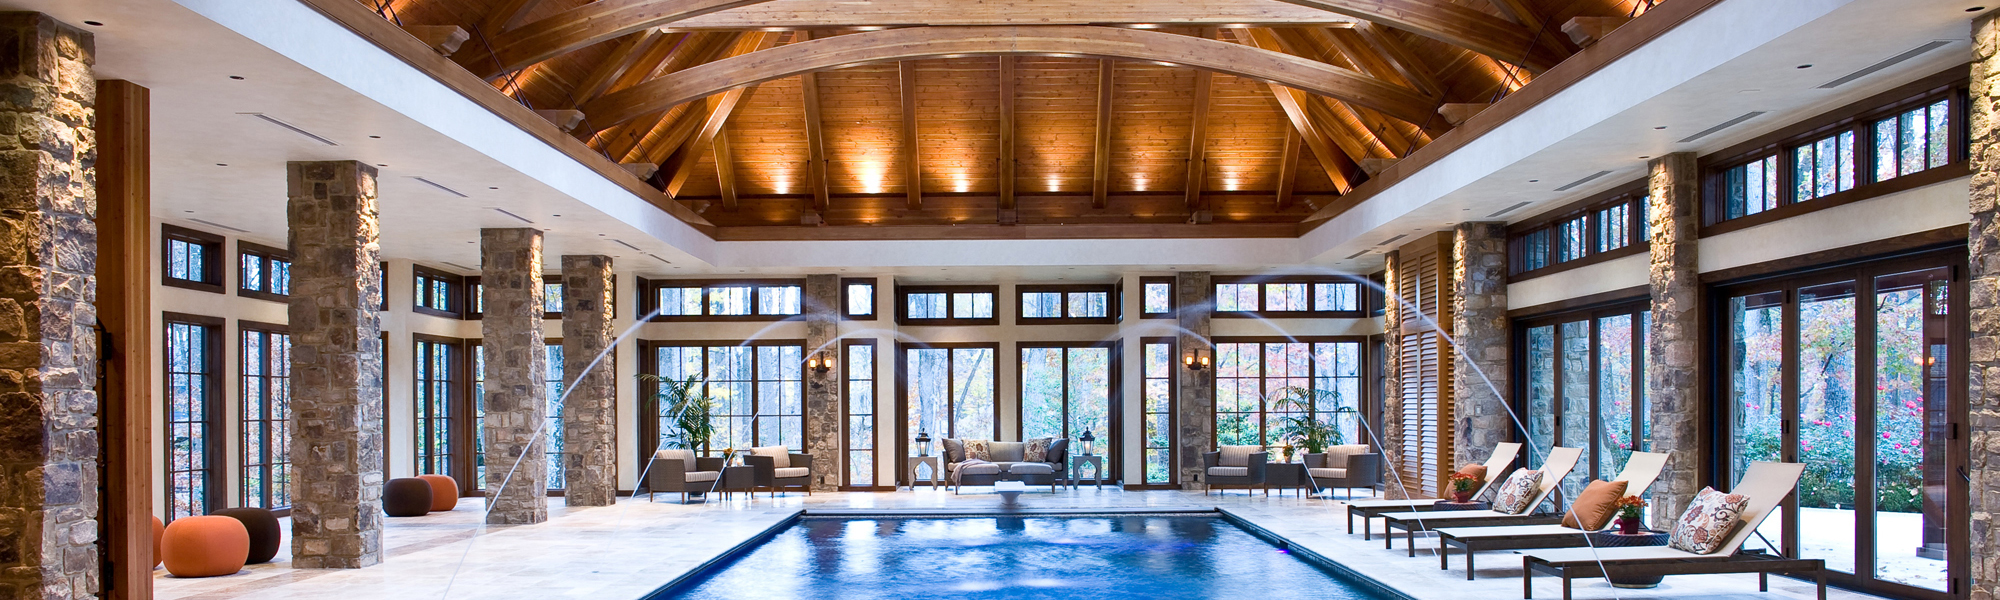 Potomac MD Indoor Pool Addition Renovation